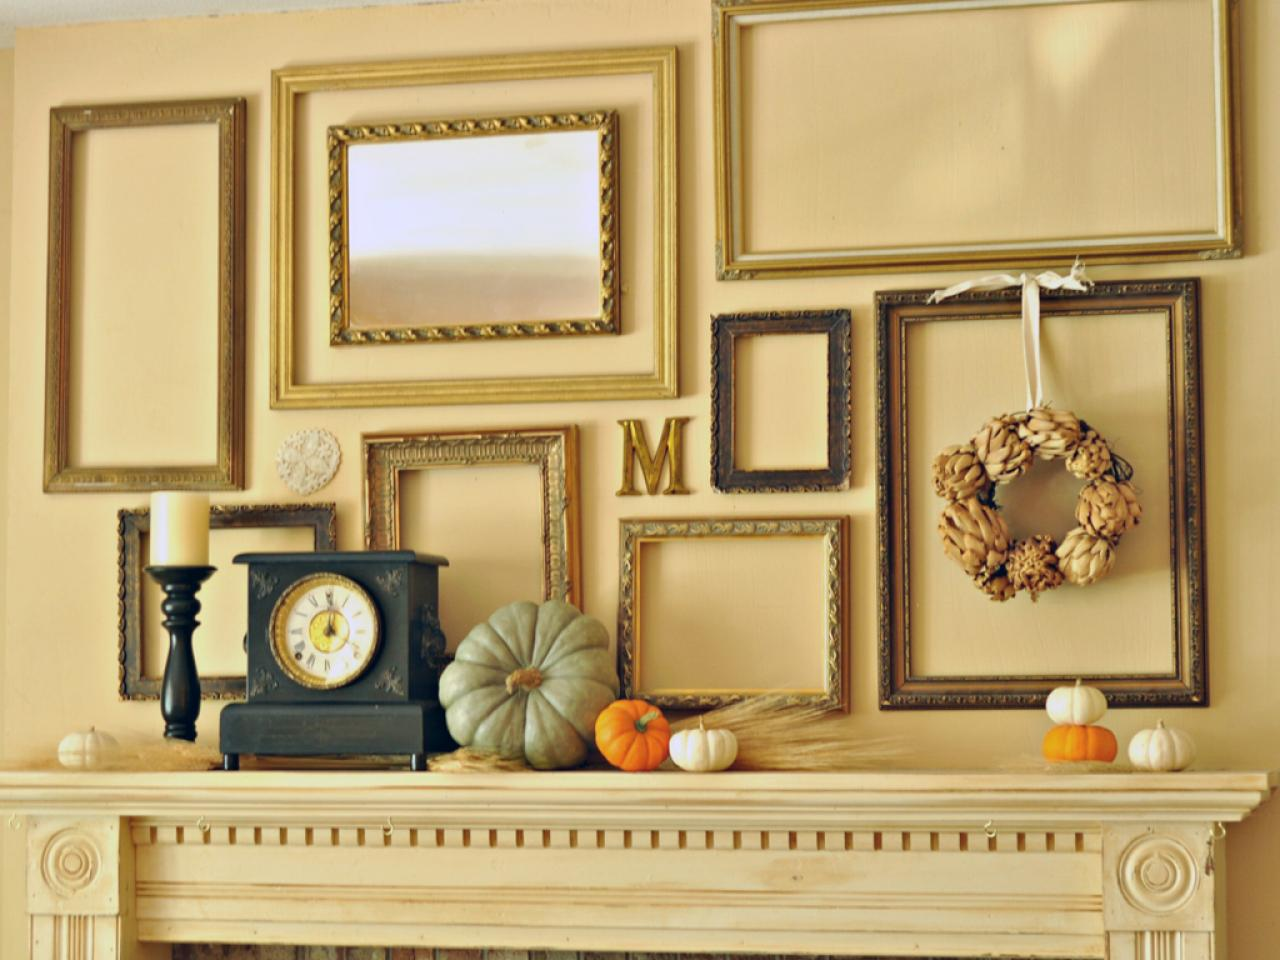 8 Fabulous Fall Mantel Ideas | HGTV\'s Decorating & Design Blog | HGTV